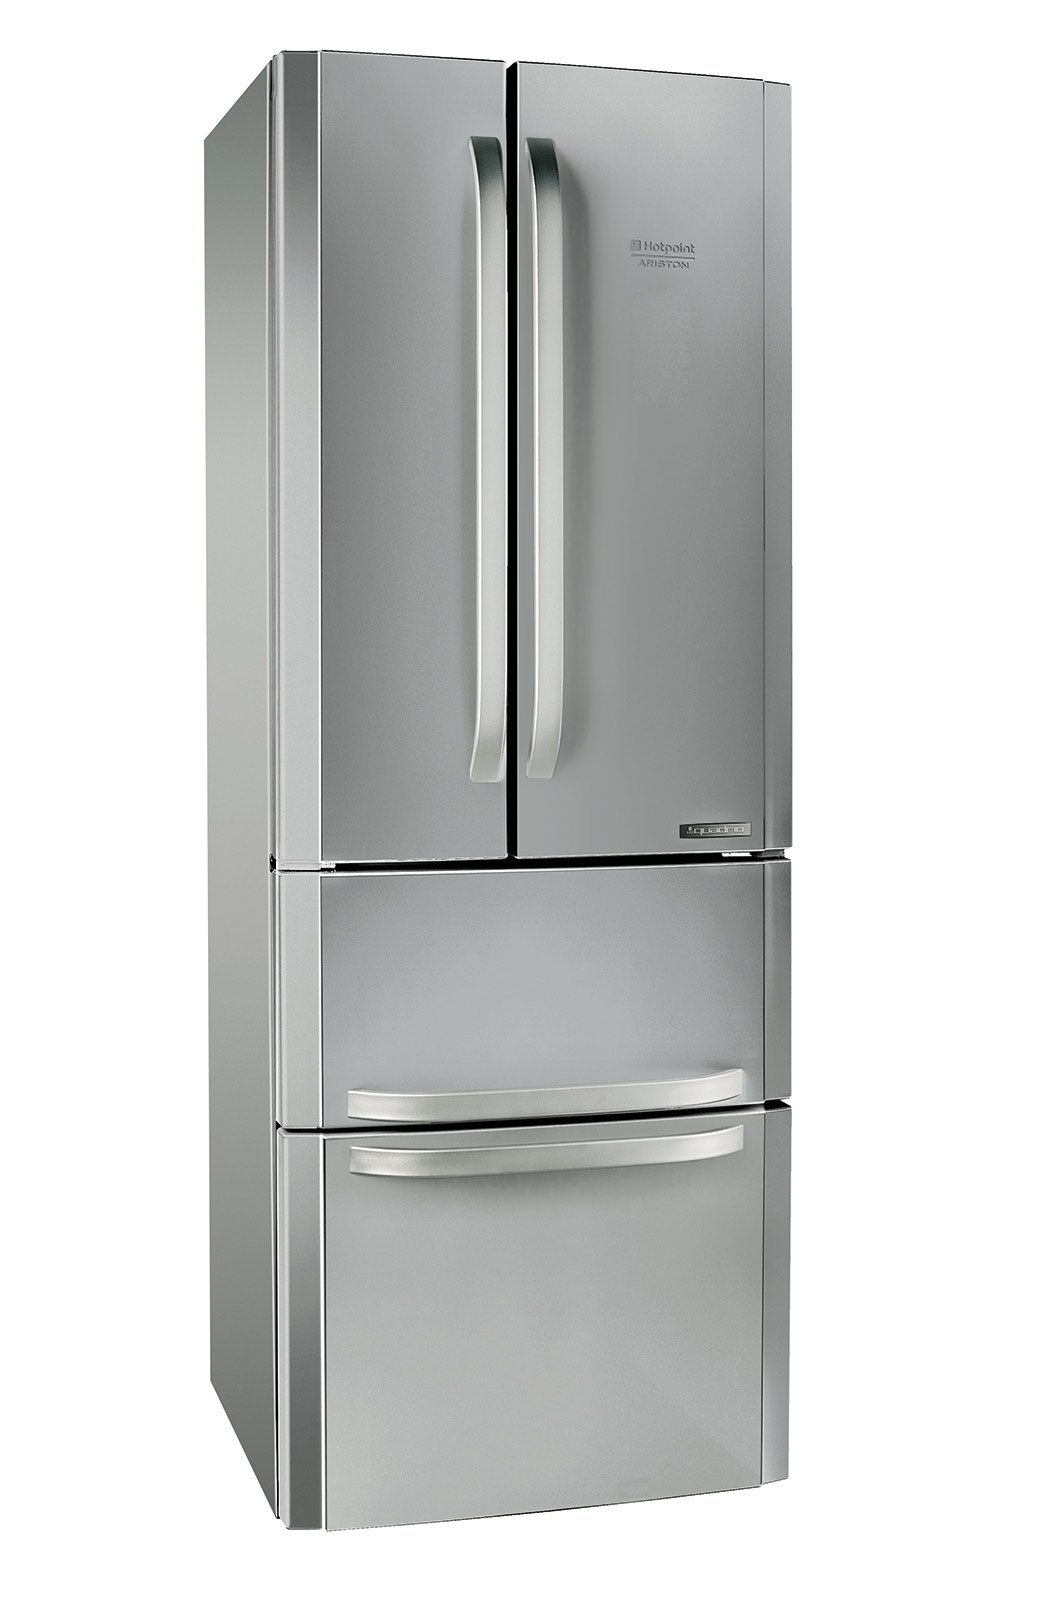 Frigo e congelatore modelli maxi a tre porte side by for Frigorifero side by side